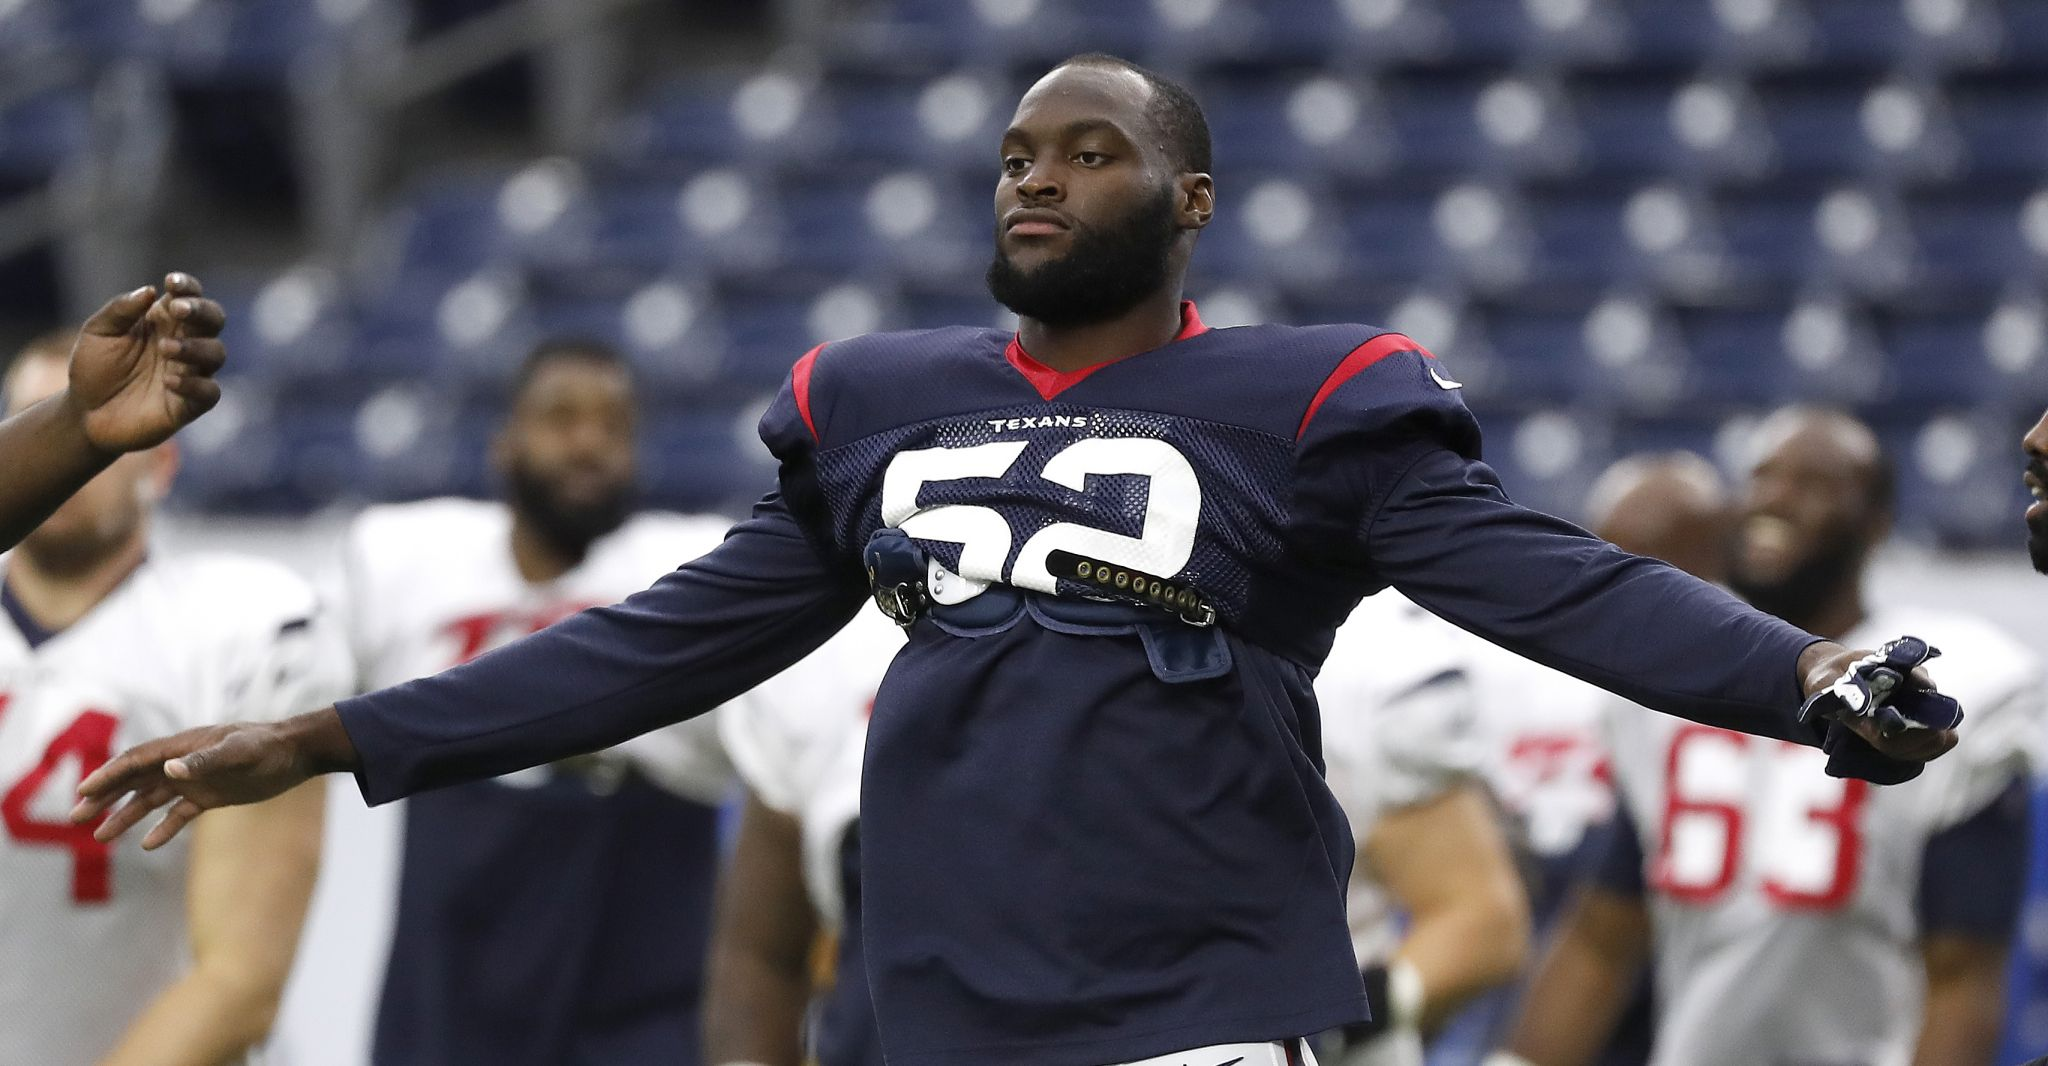 Texans' Barkevious Mingo reflects on whirlwind week